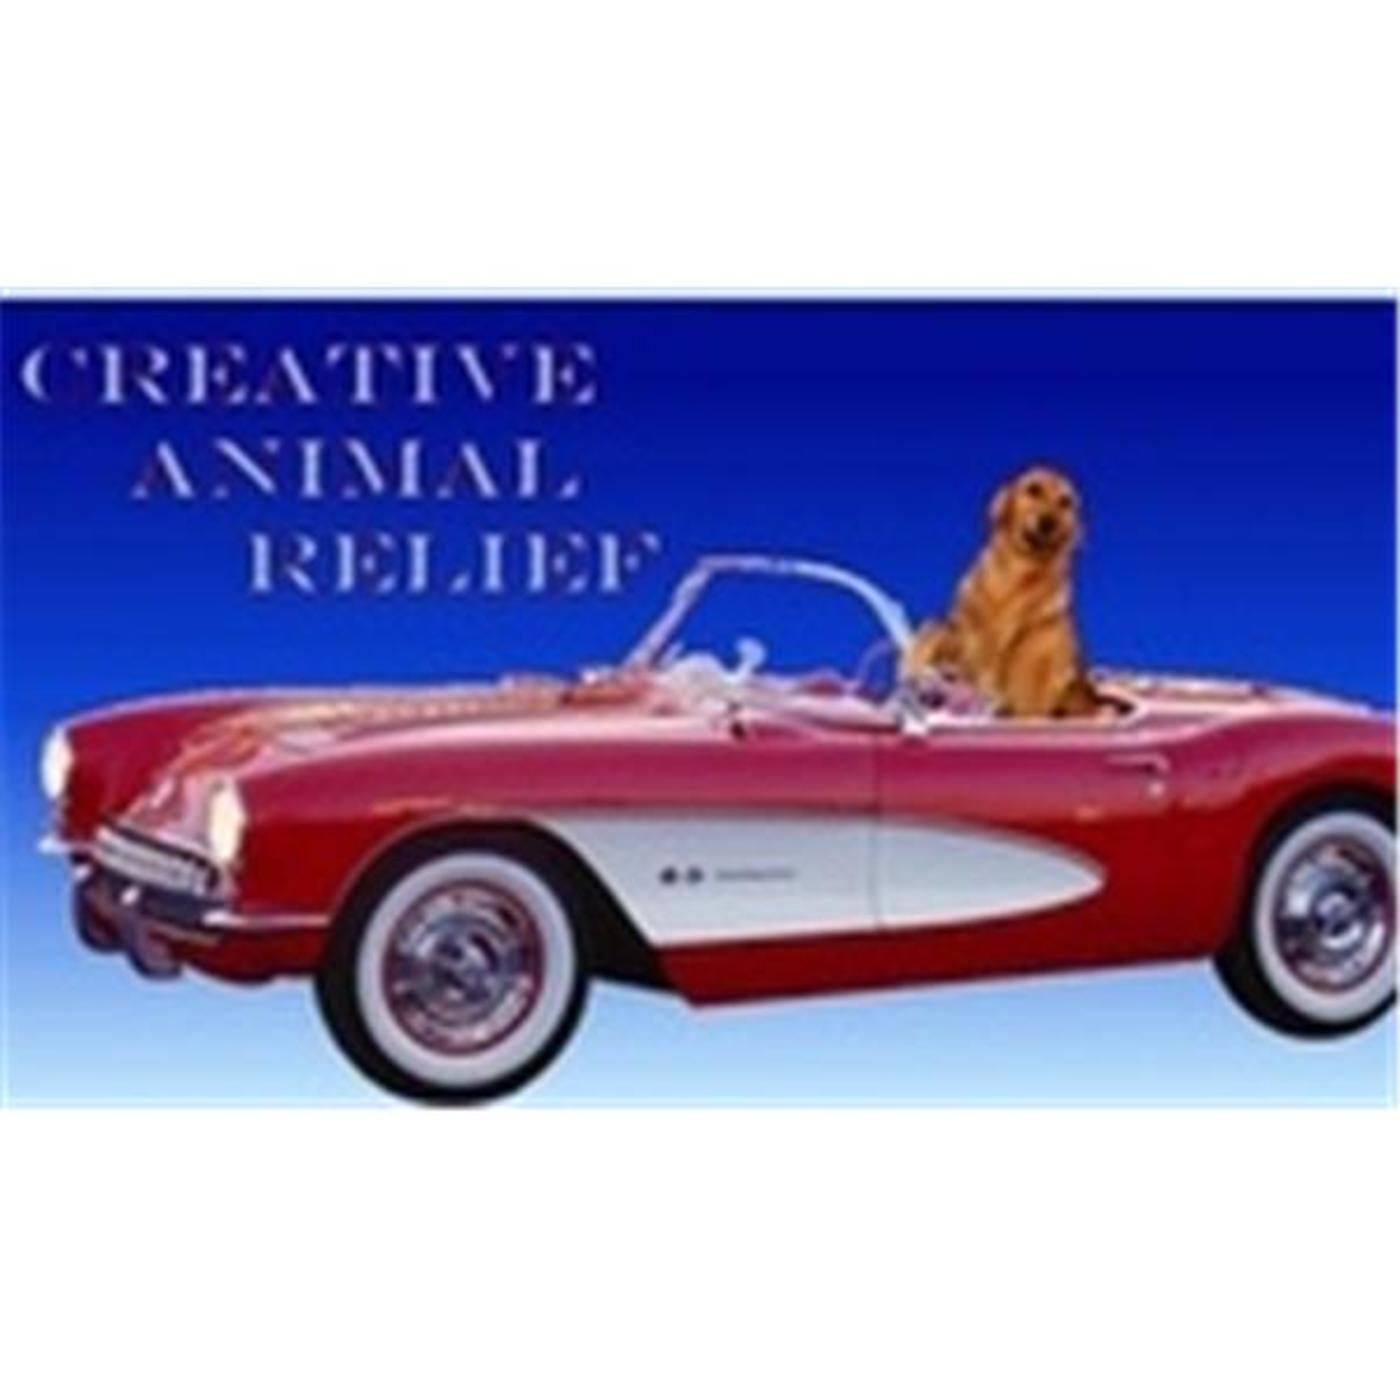 CAR Creative Animal Relief